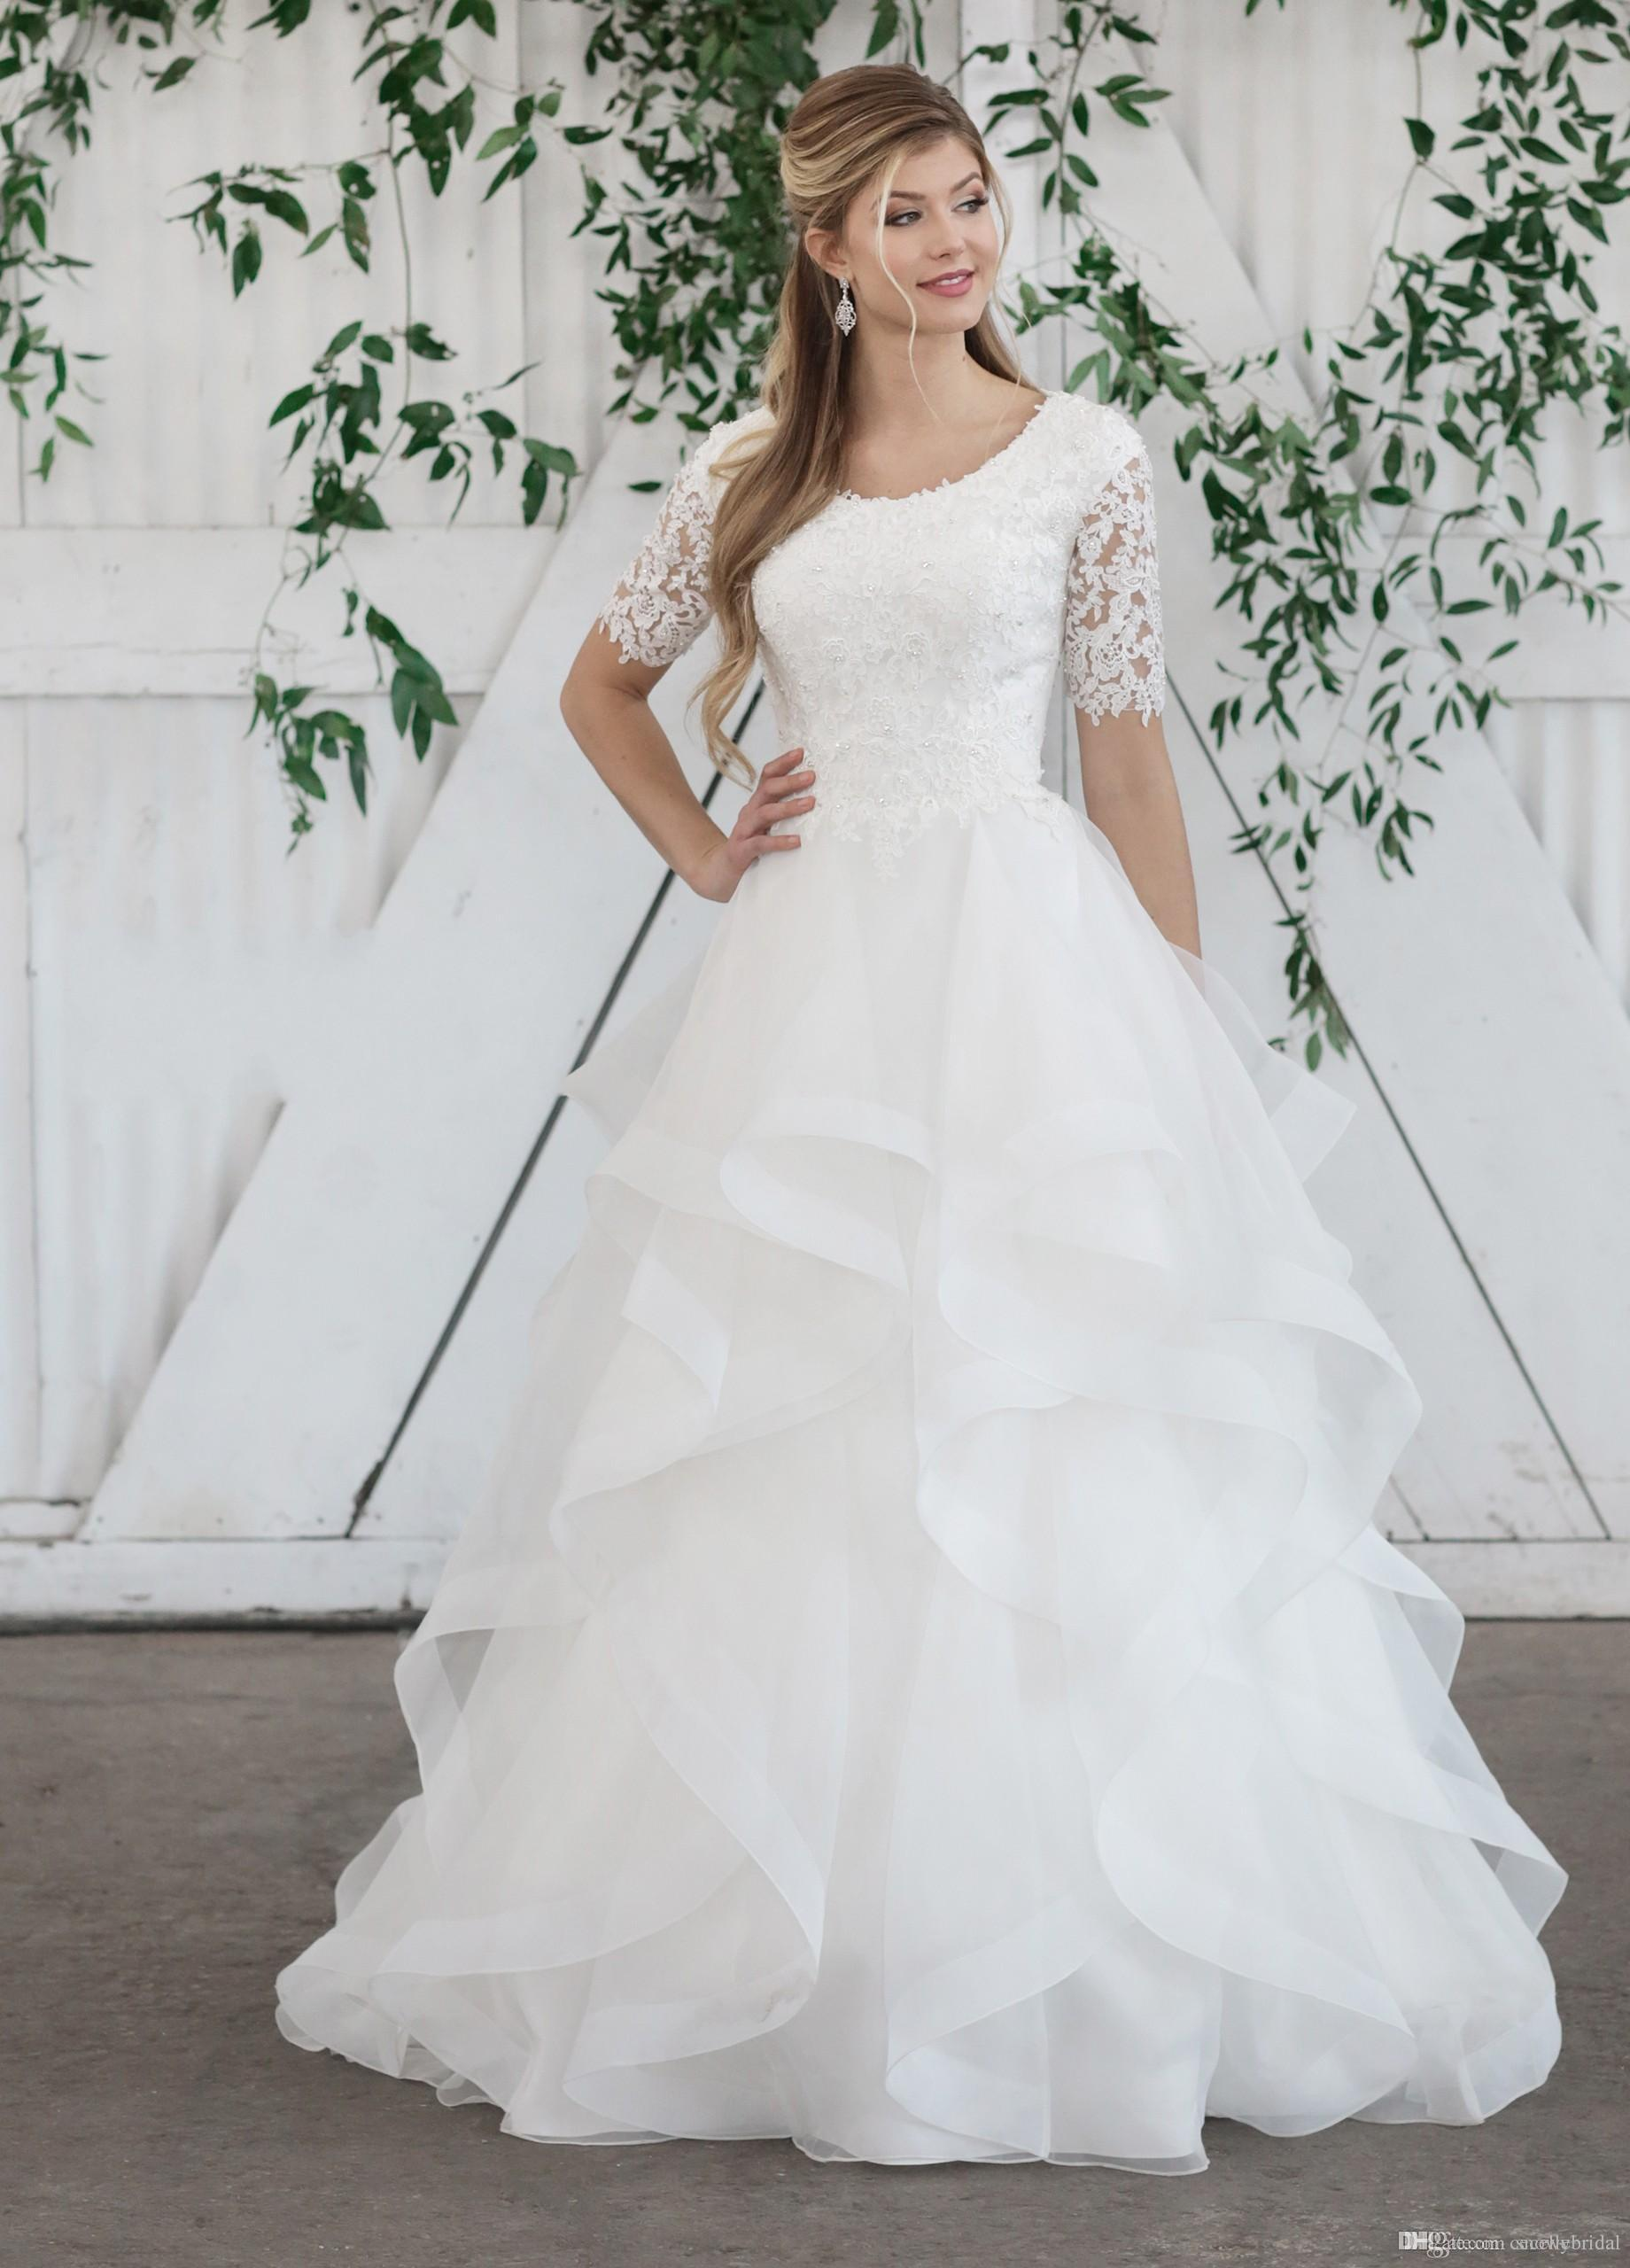 Modest Wedding Dress.2019 New Ball Gown Modest Wedding Dress With Half Sleeves Beaded Lace Top Ruffles Skirt Temple Bridal Gowns Sleeved Custom Made